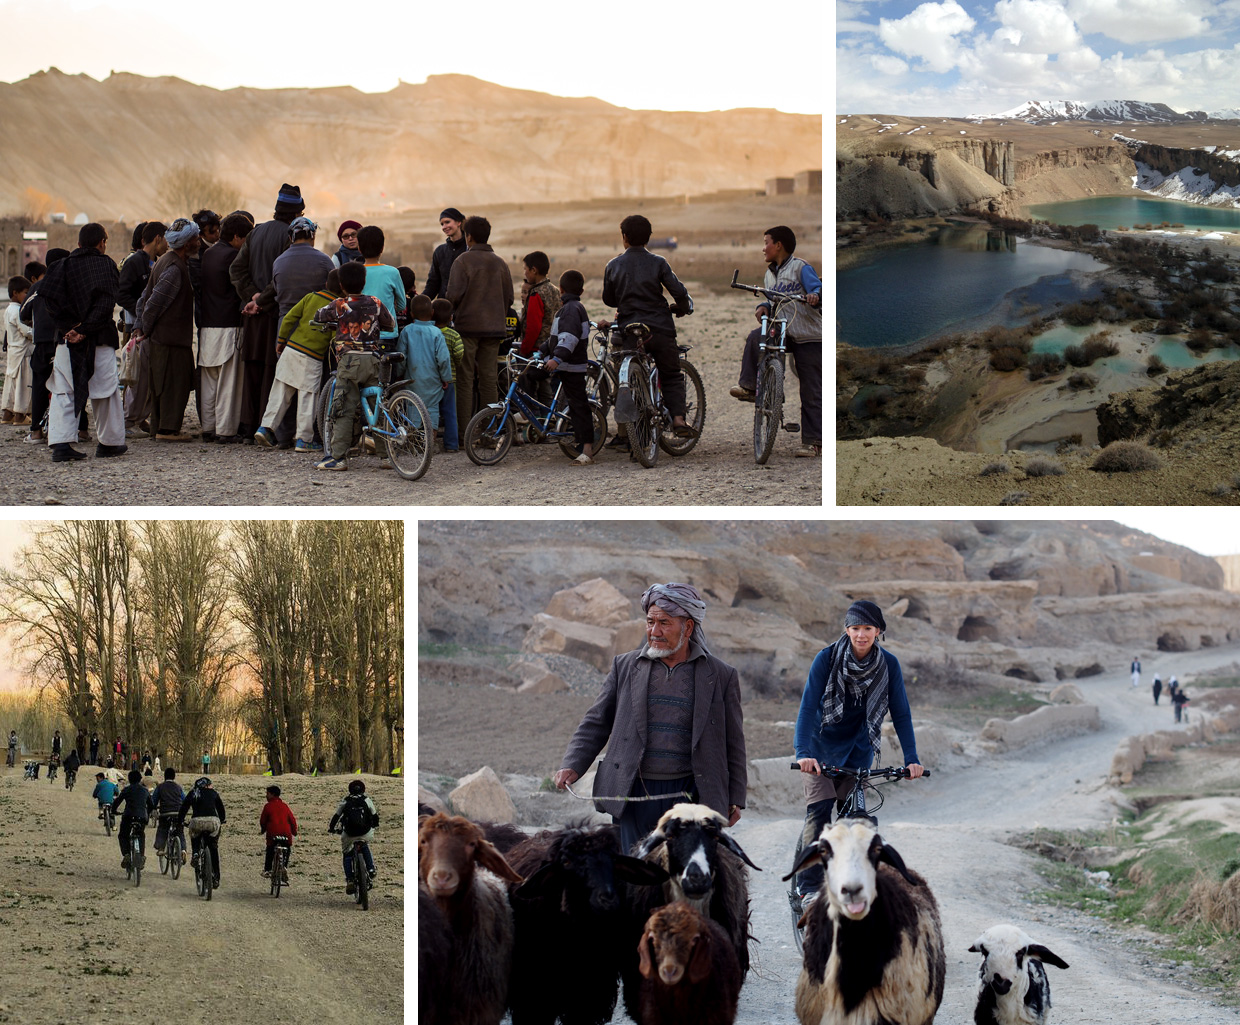 Working with the children of bamiyan